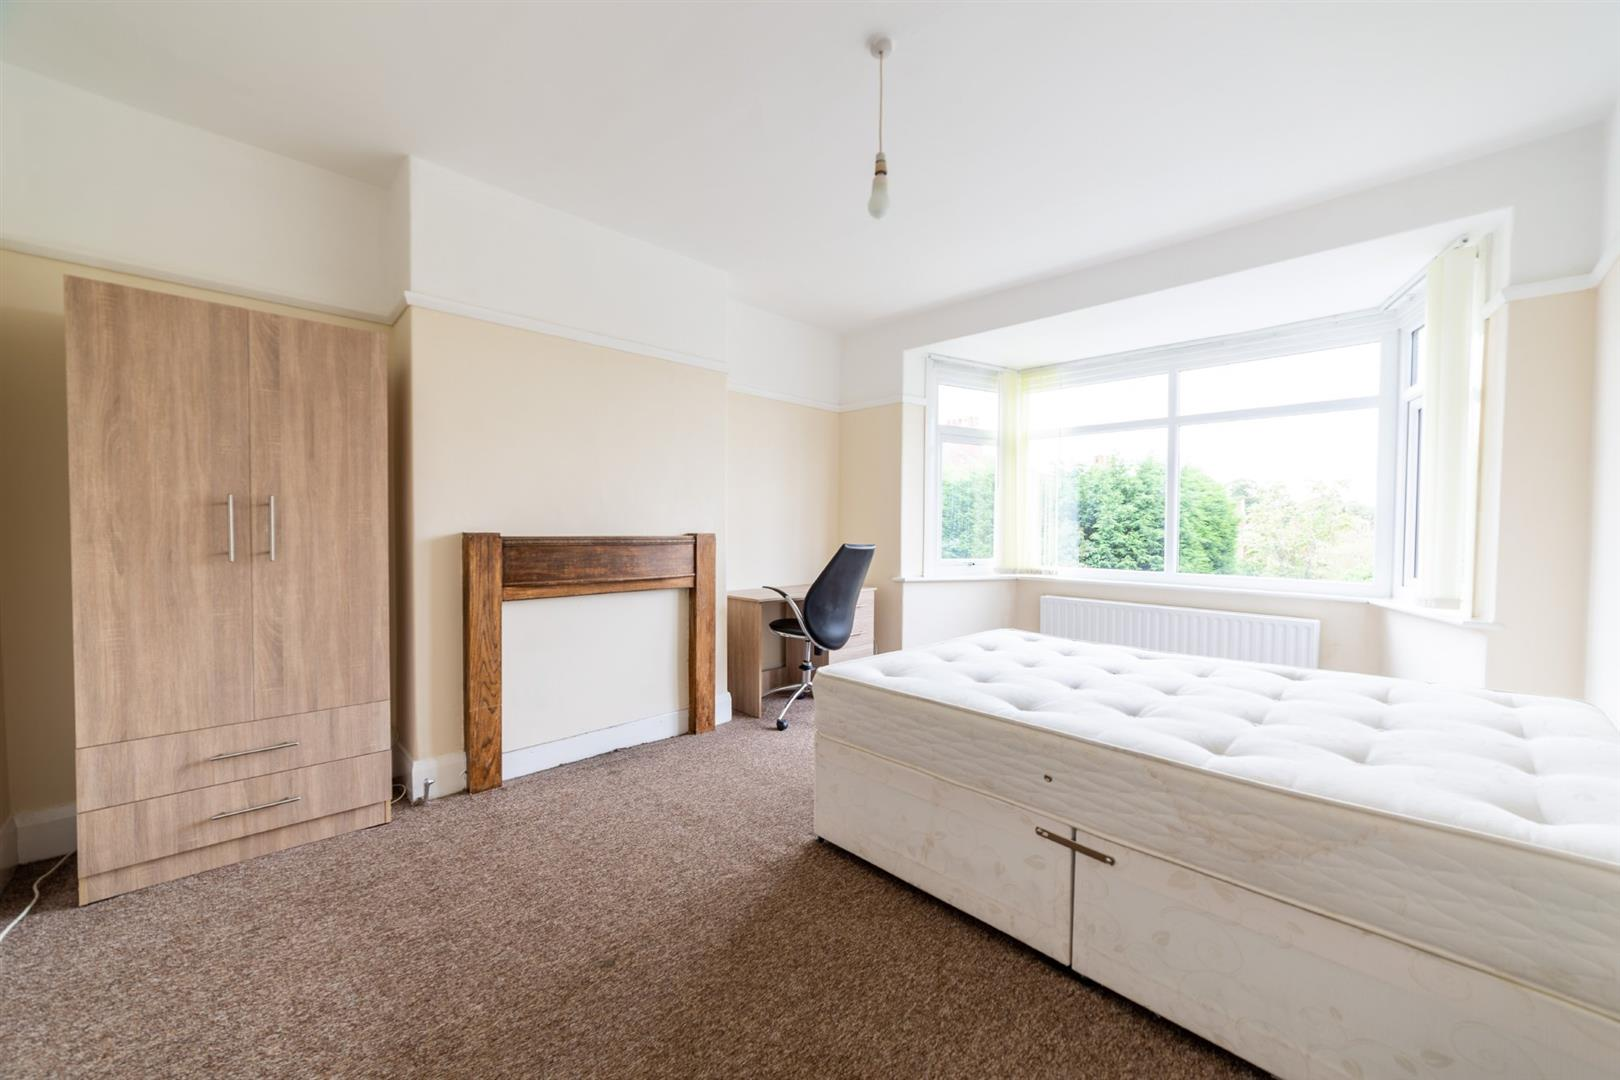 3 bed flat to rent in Newcastle Upon Tyne, NE2 2JS  - Property Image 5